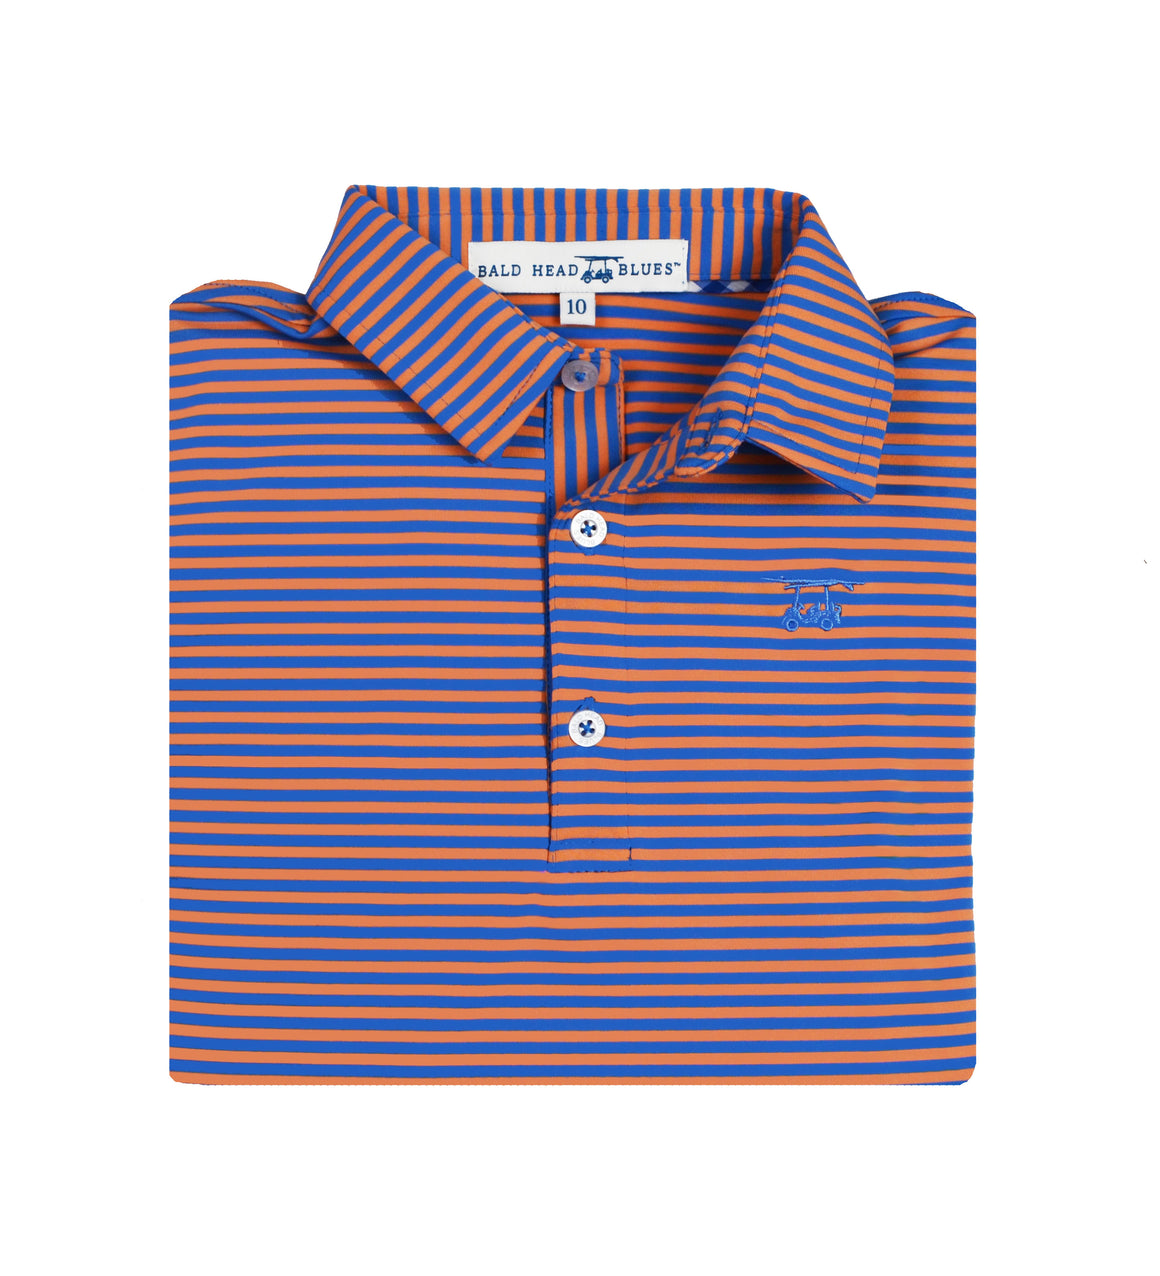 Albatross Youth Polo - Cantalope/Regatta